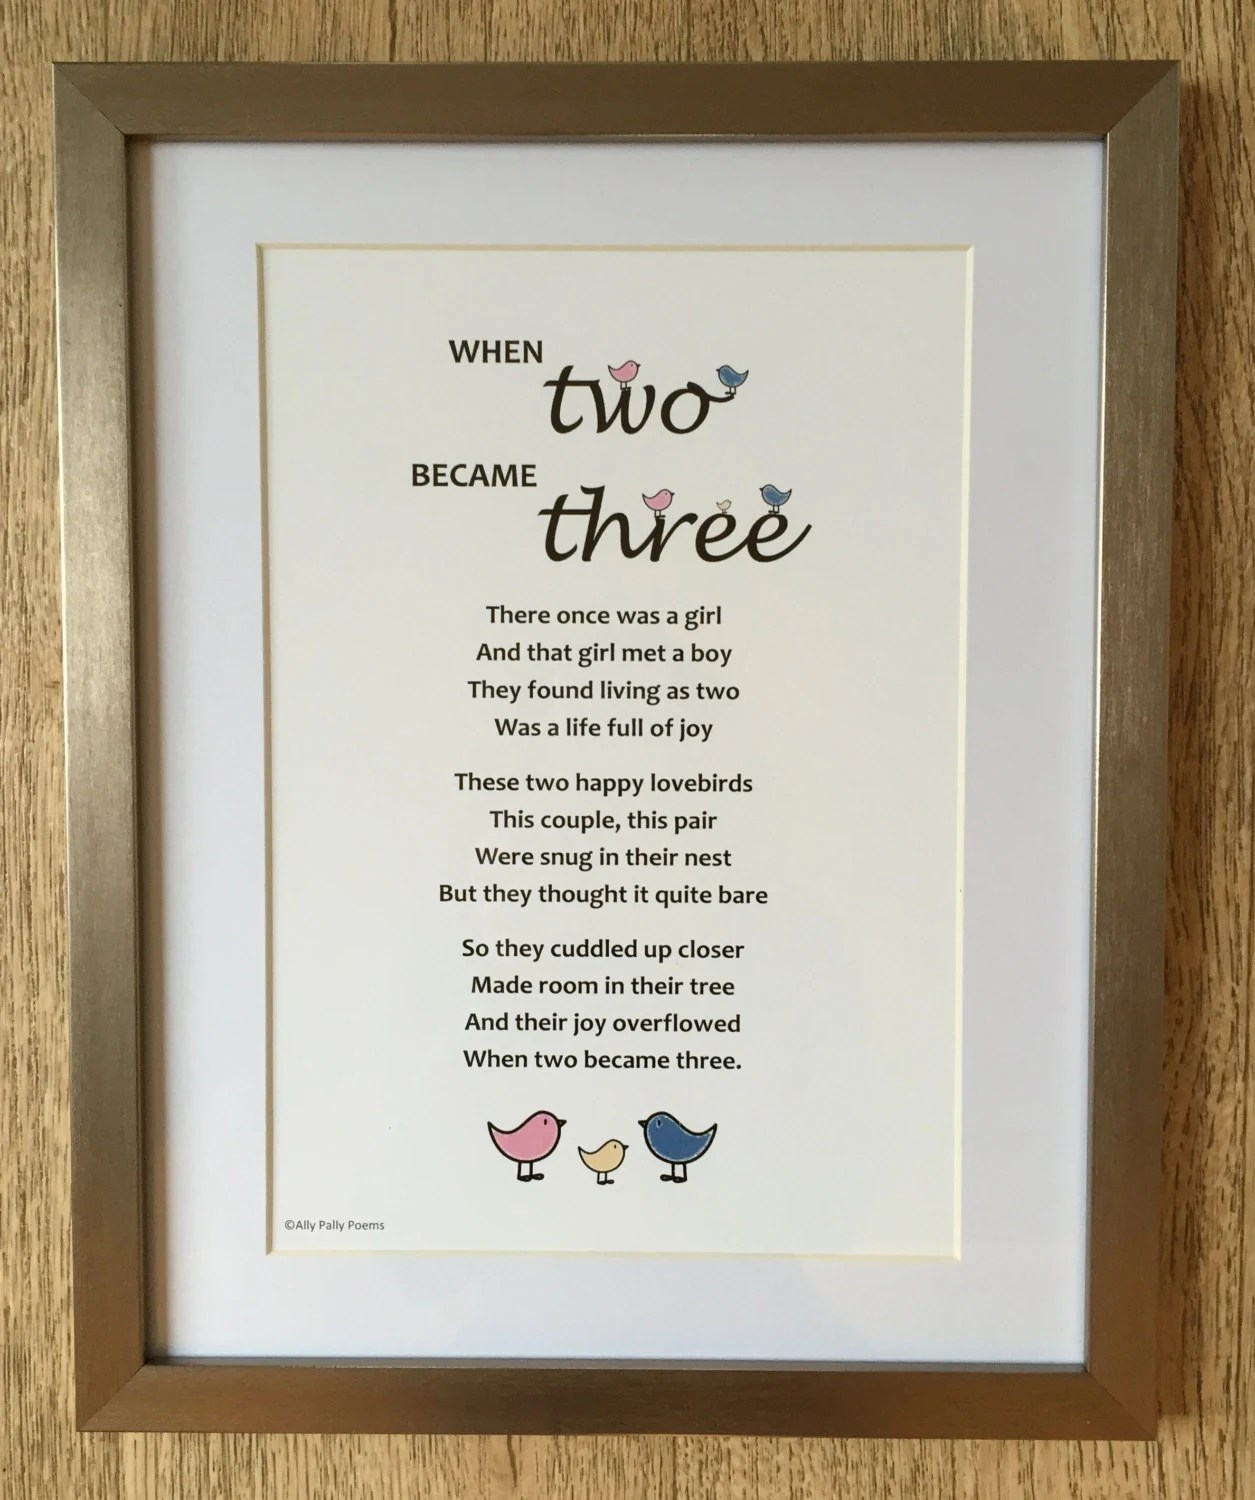 Poem For New Baby 'When Two Became Three' T For